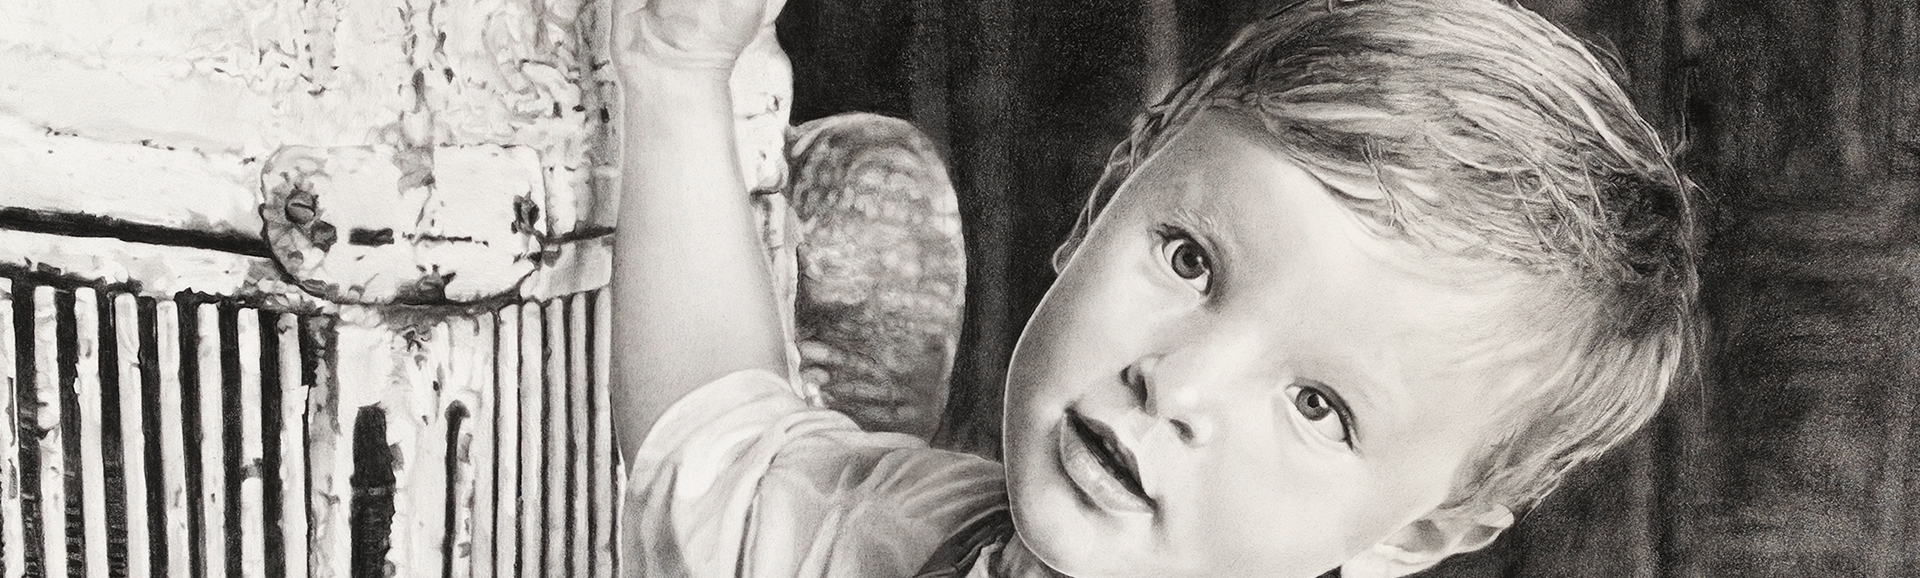 "Graphite drawing of ""Stephan"" a young Caucasian boy in a white tee shirt and jean overalls next to a paint peeled automobile."